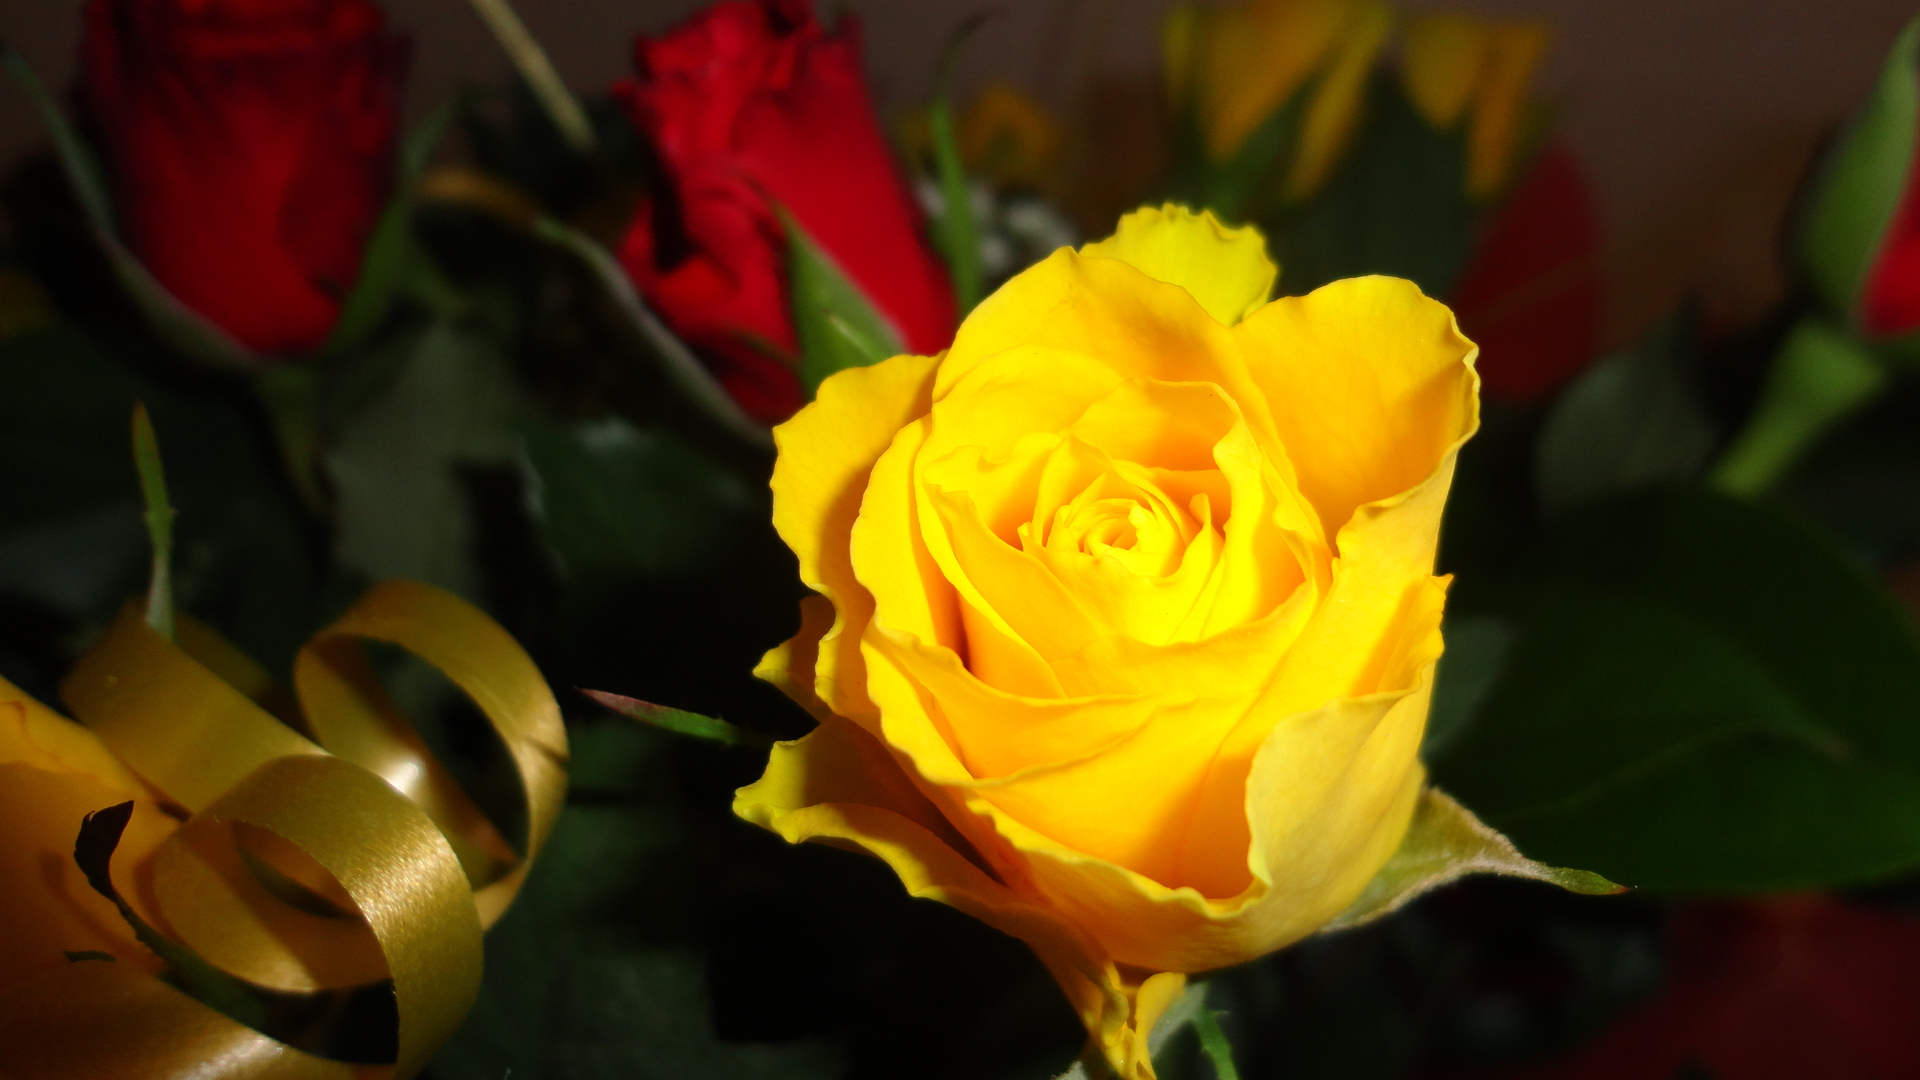 Yellow Rose Flowers Images 2 Desktop Background Hdflowerwallpaper